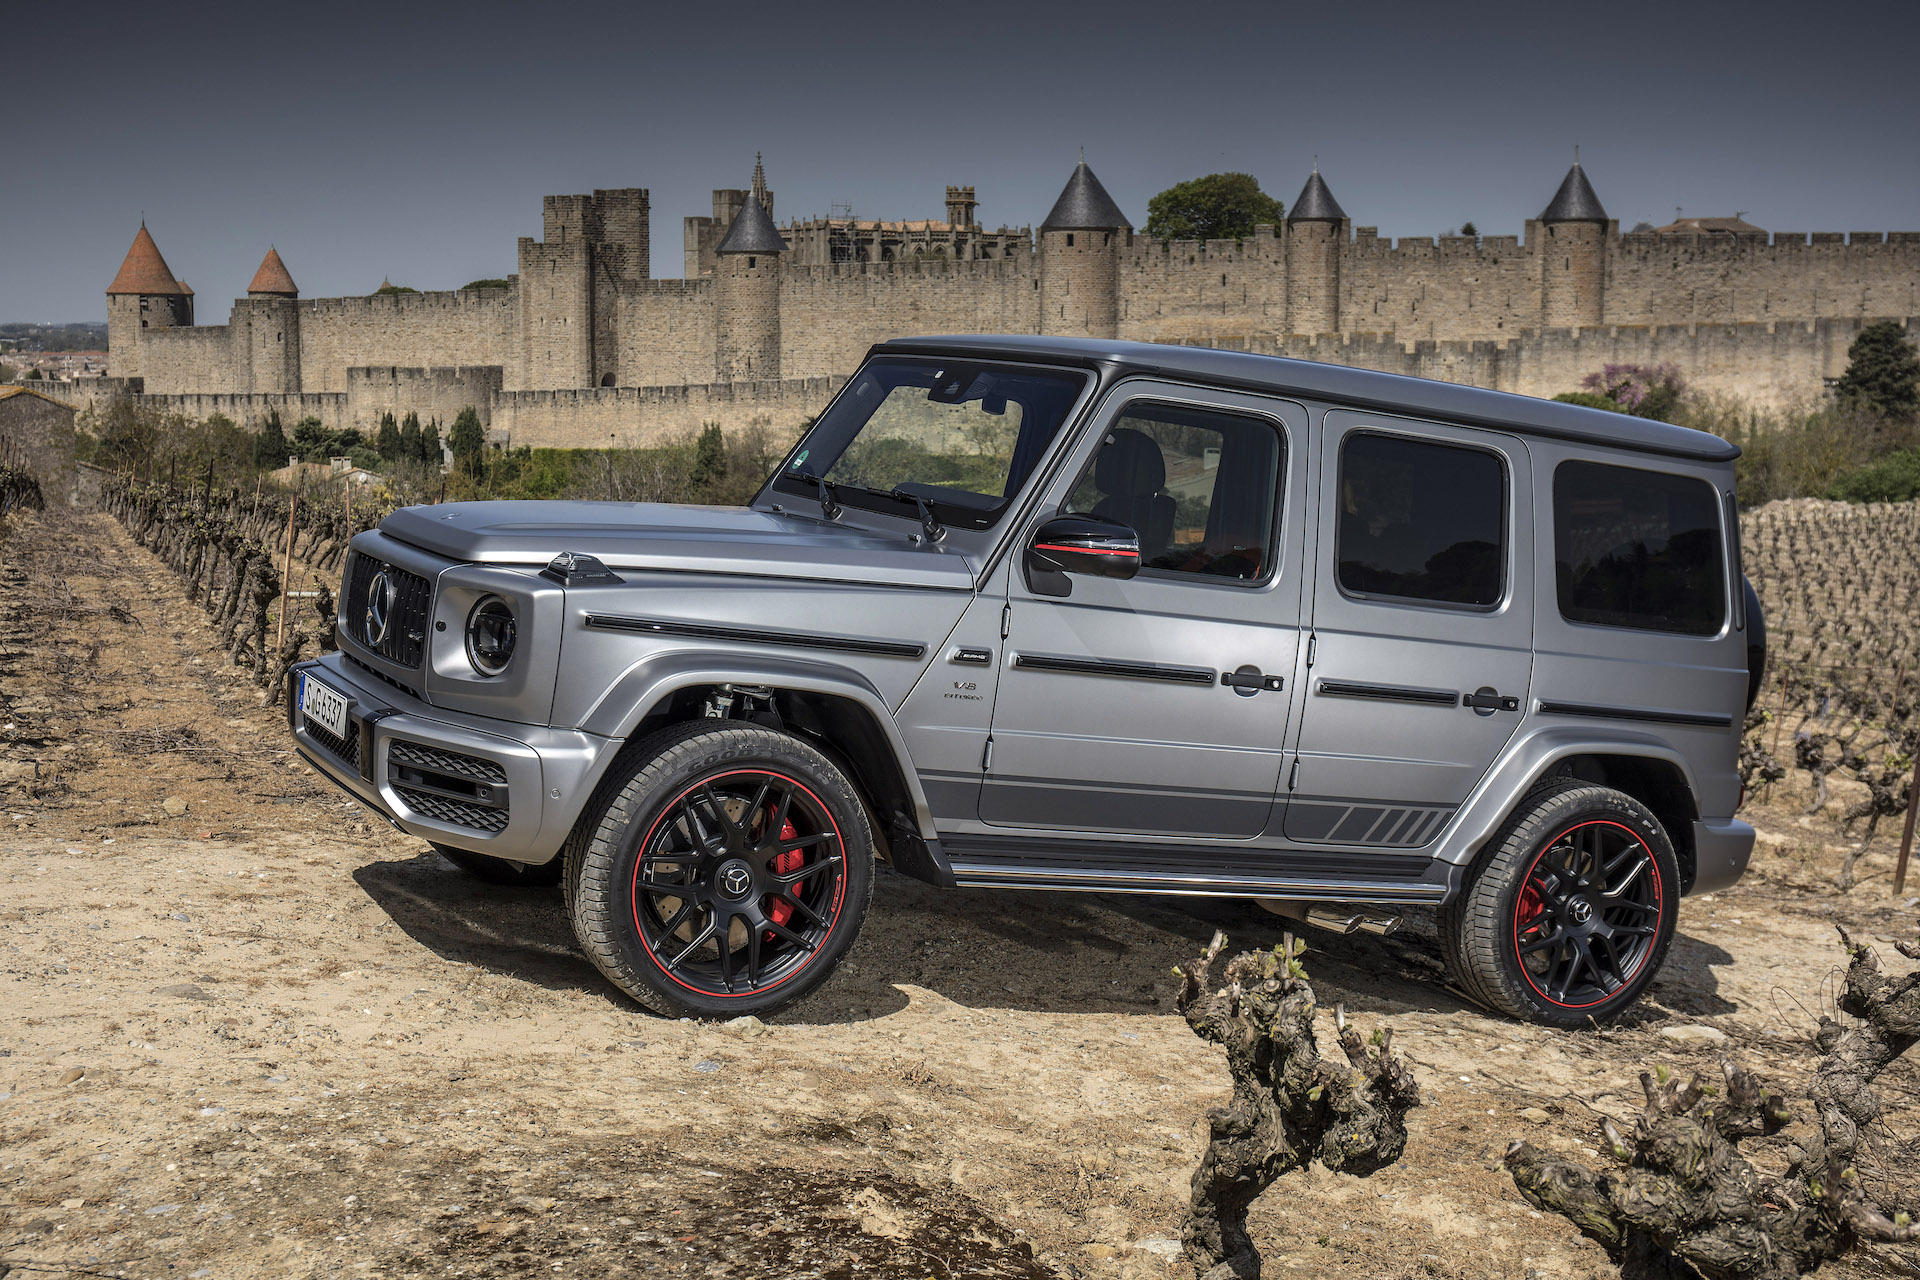 2019 Mercedes Benz G550 And Amg G63 First Drive Review Flying Bricks And Off Road Tricks